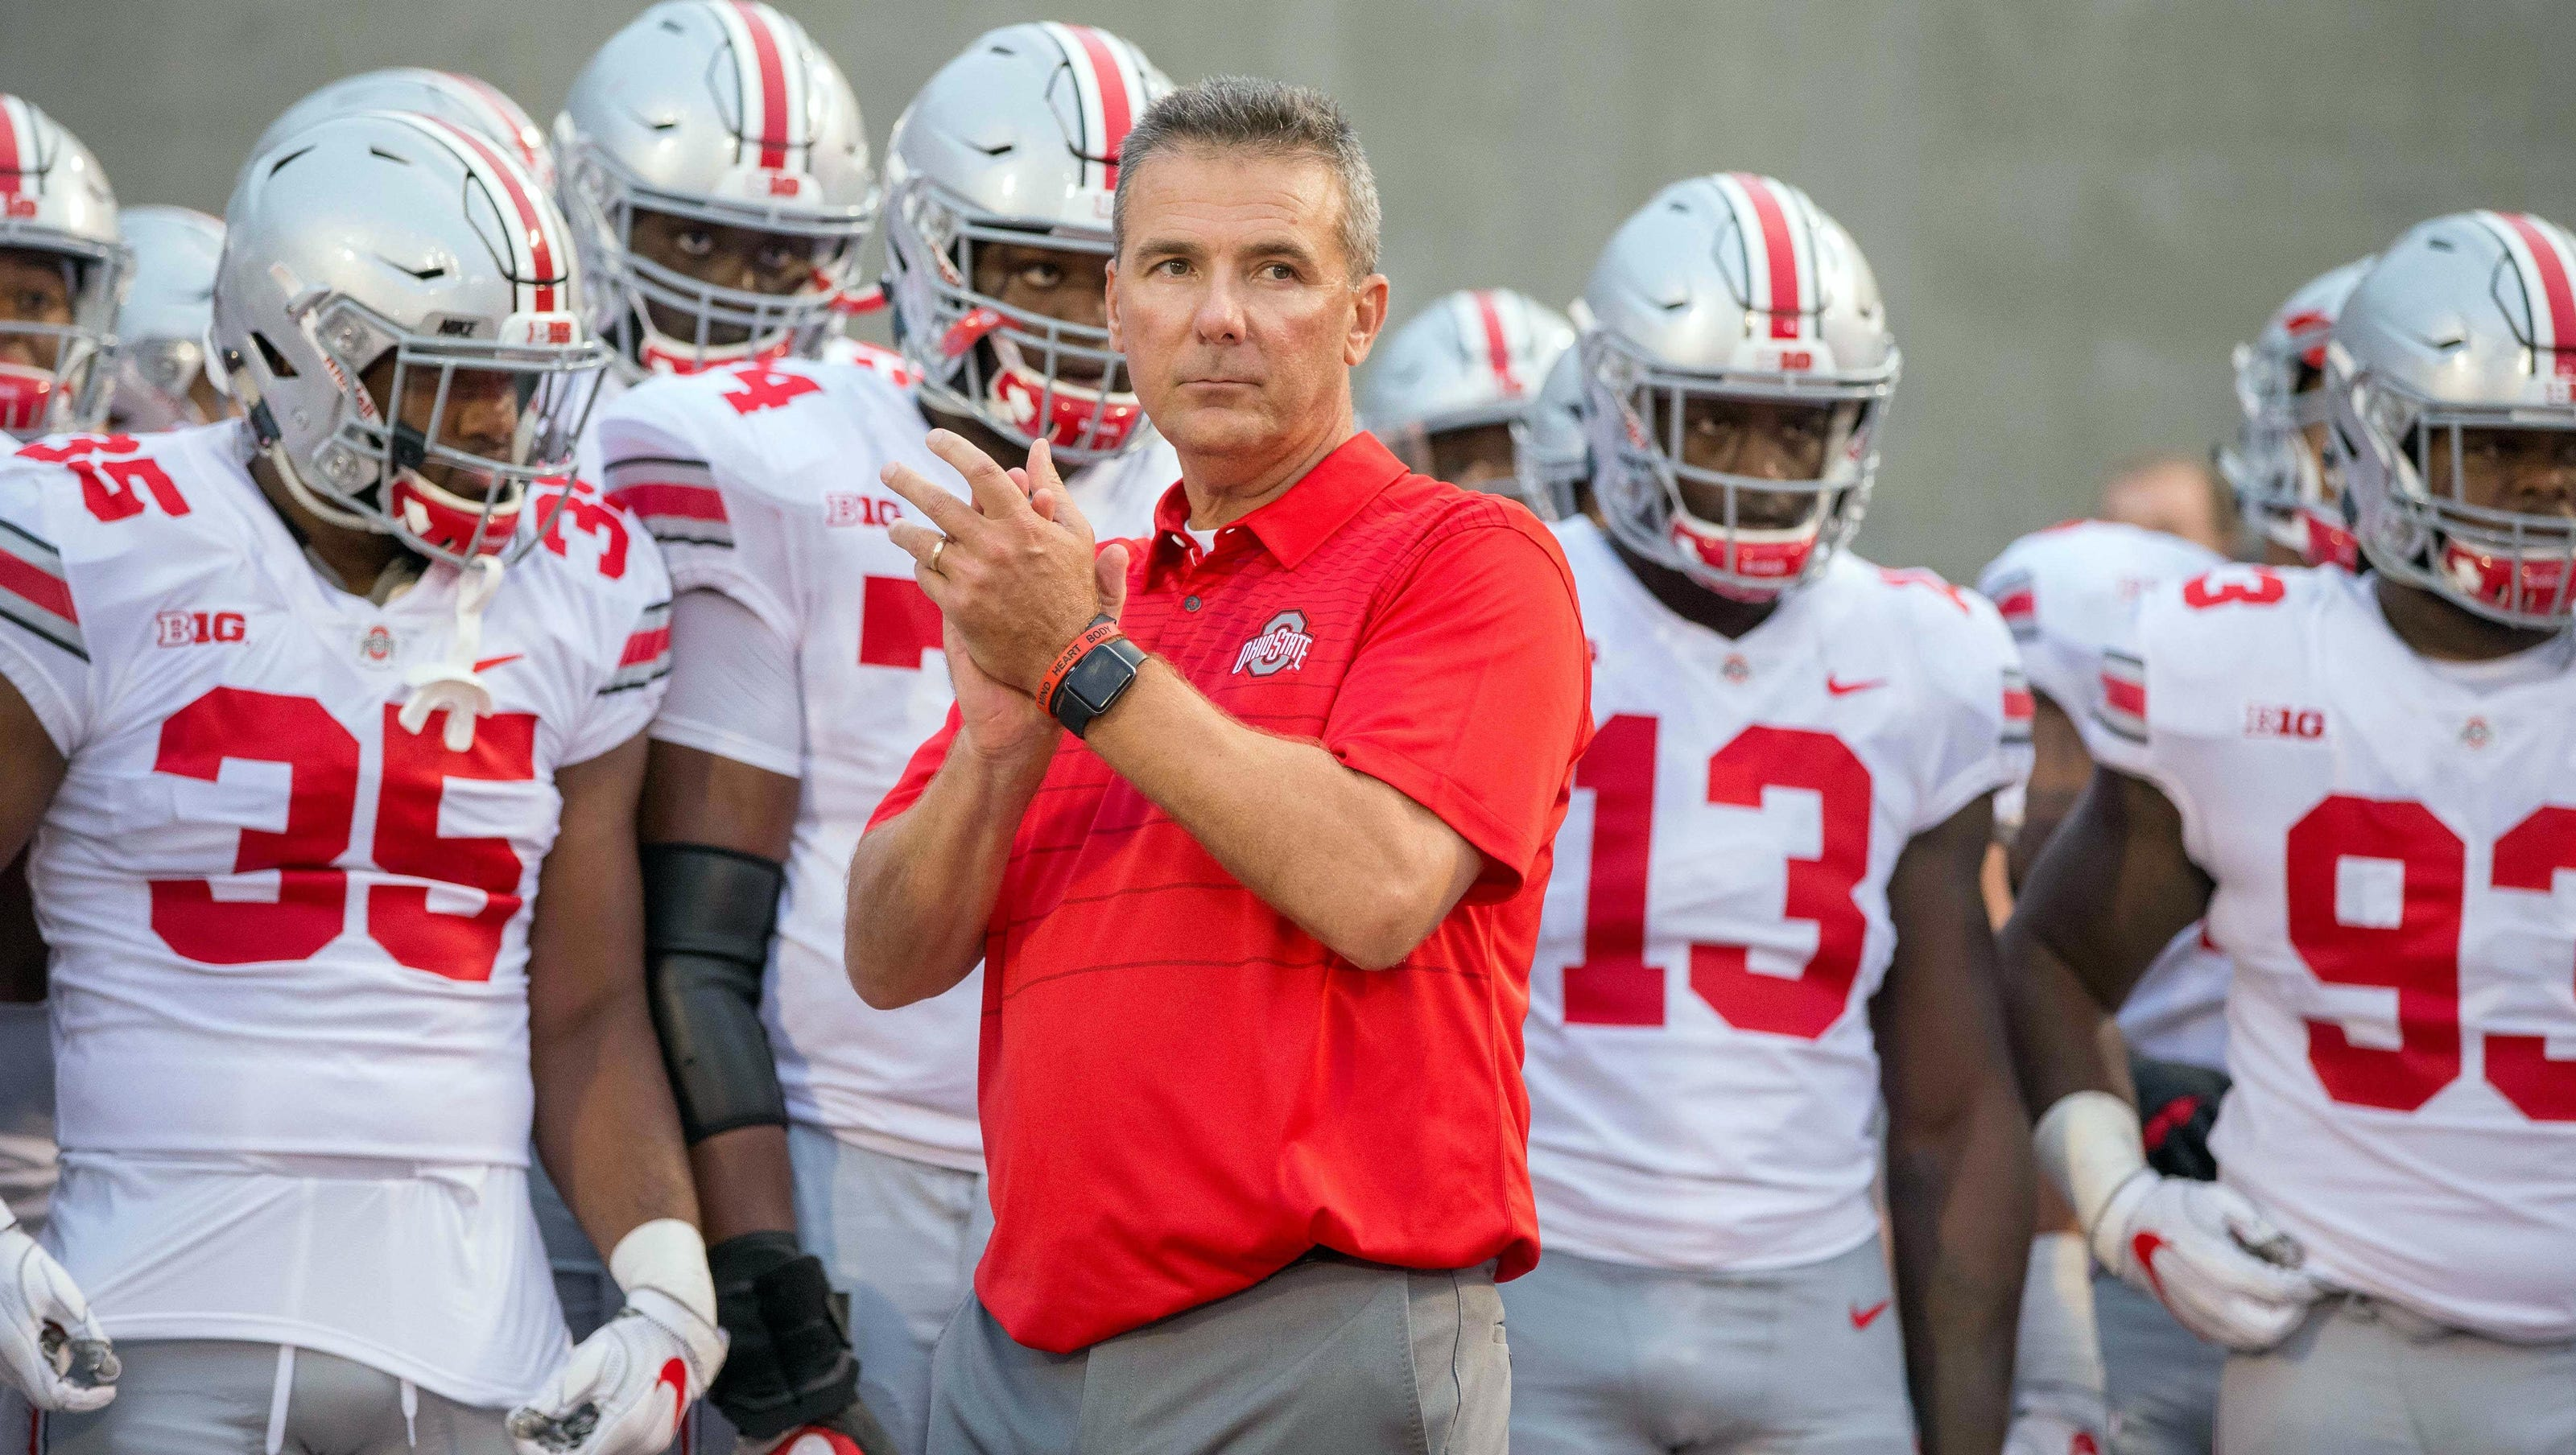 Urban Meyer Remains Ohio State S Coach But He Loses Moral High Ground